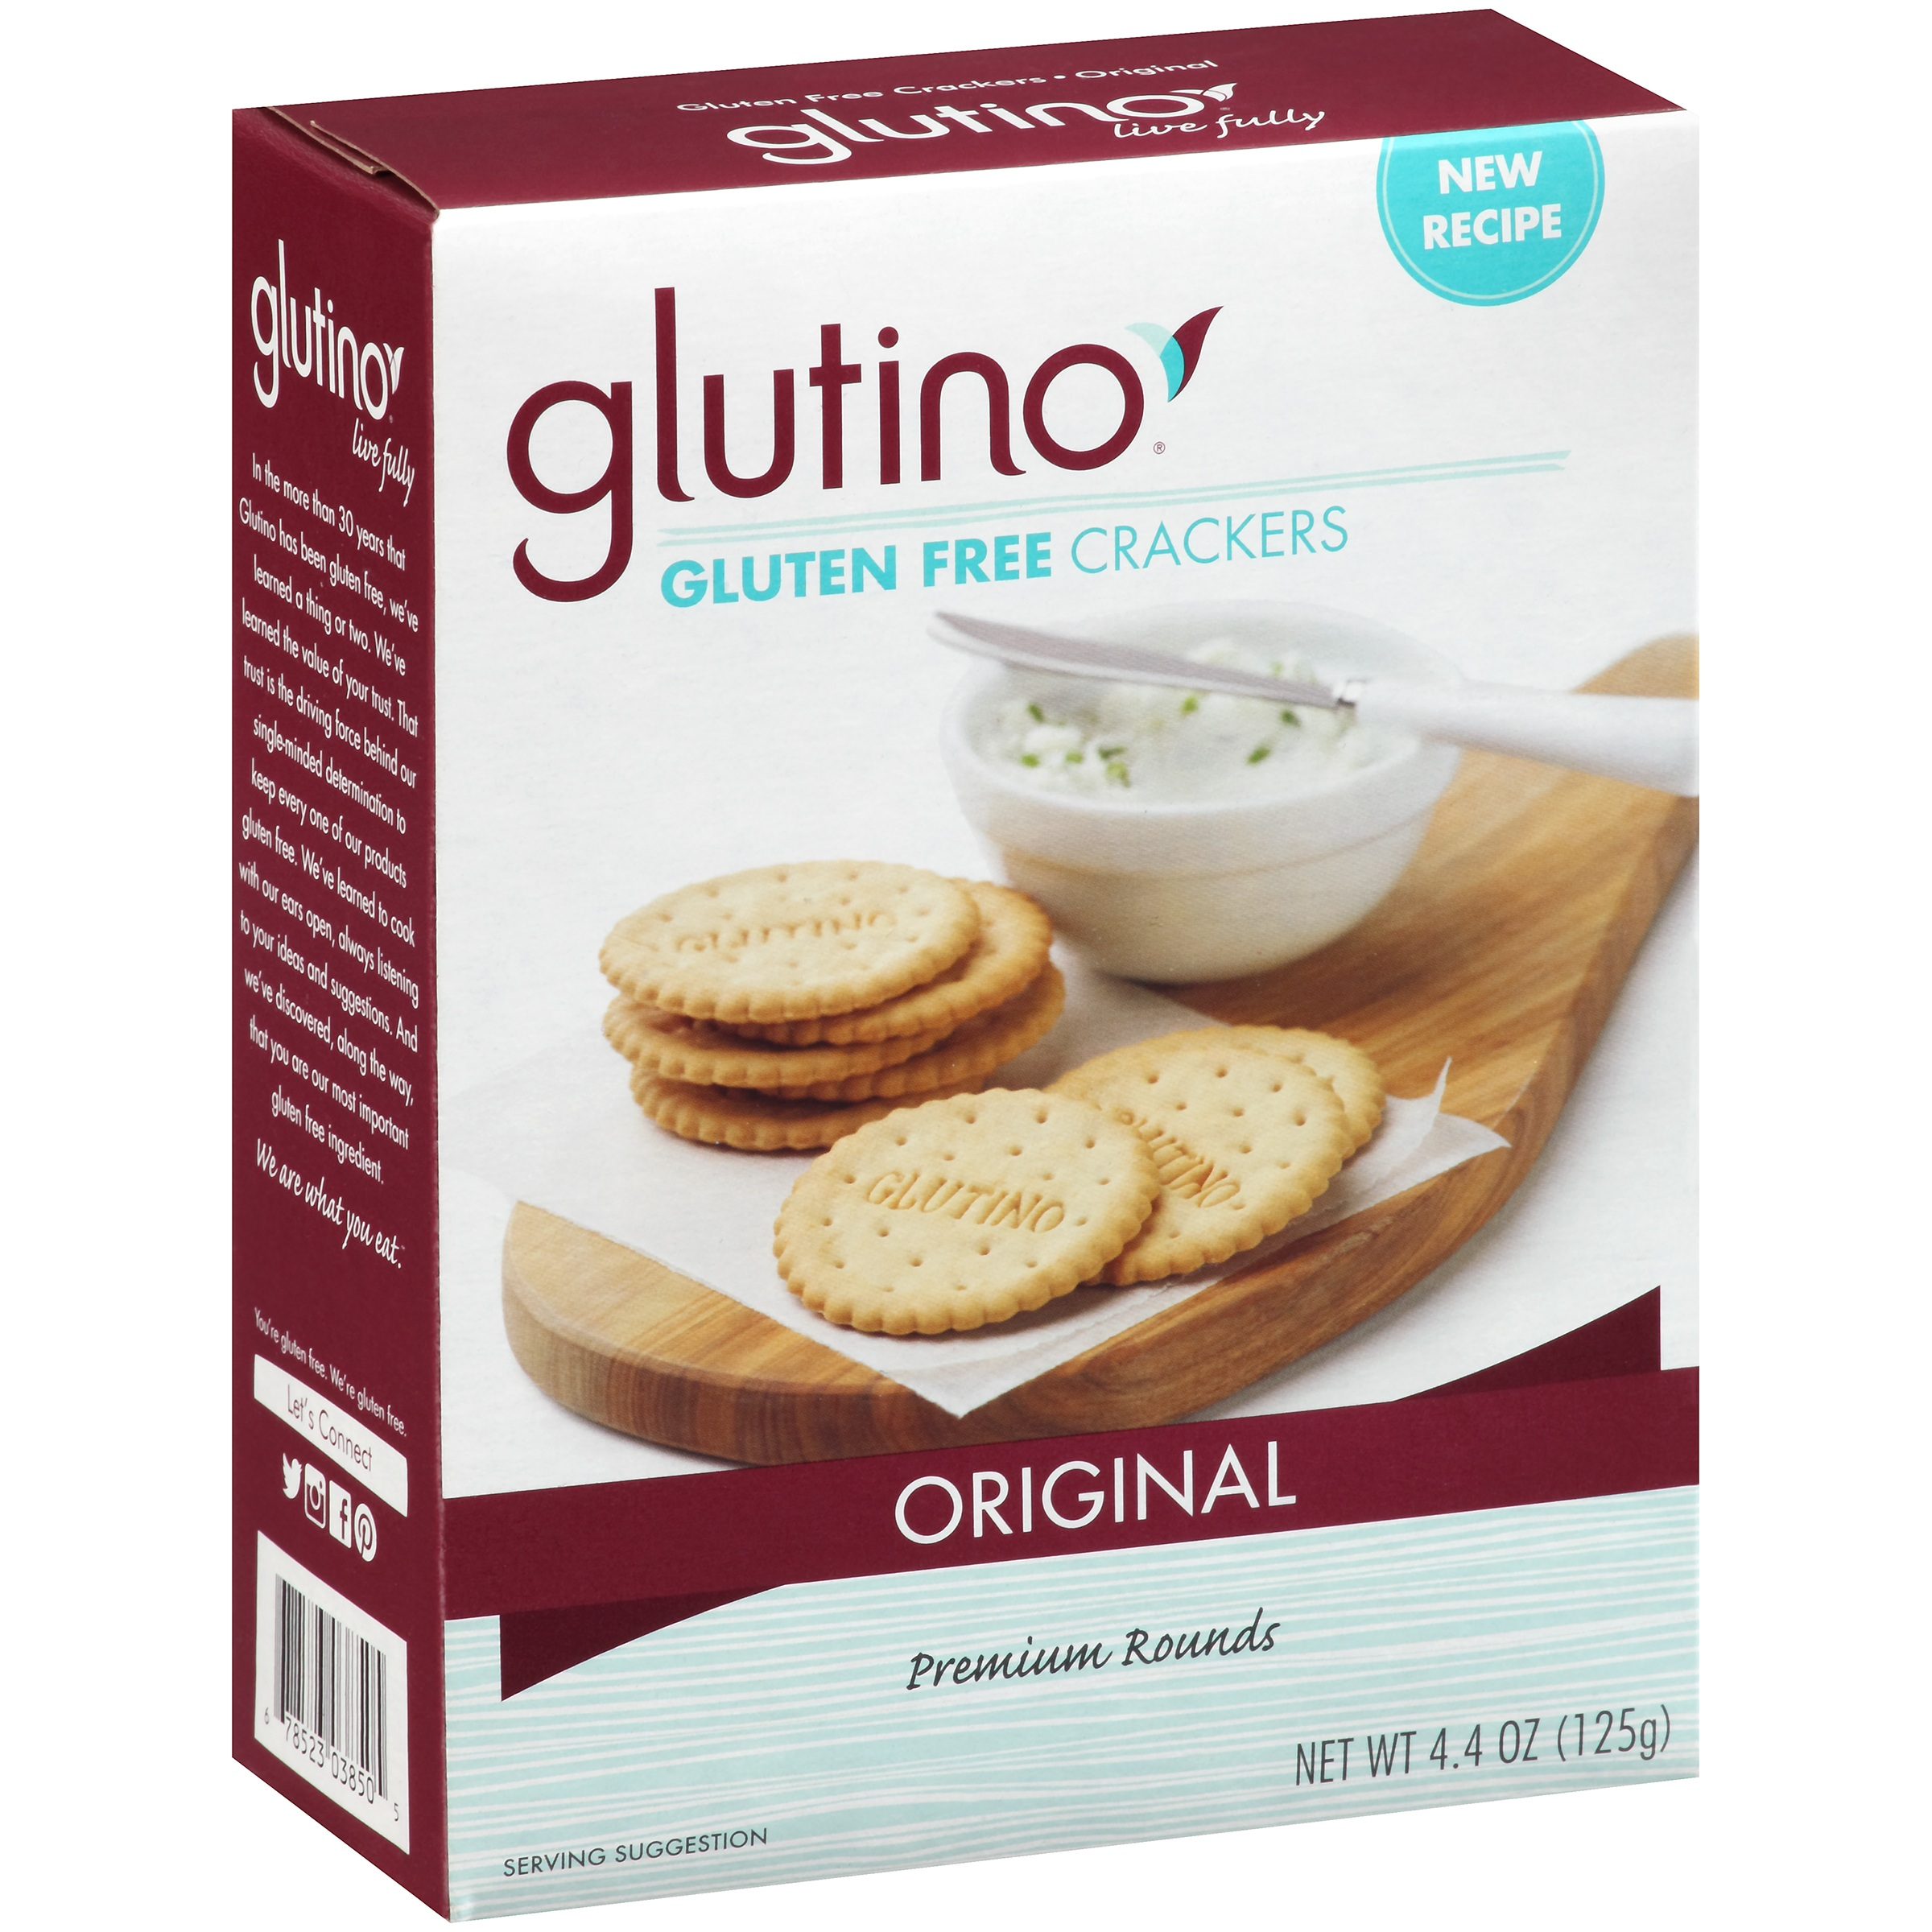 Glutino Original Gluten Free Crackers 4.4 oz. Box by Glutino, A Division of Boulder Brands USA, Inc.